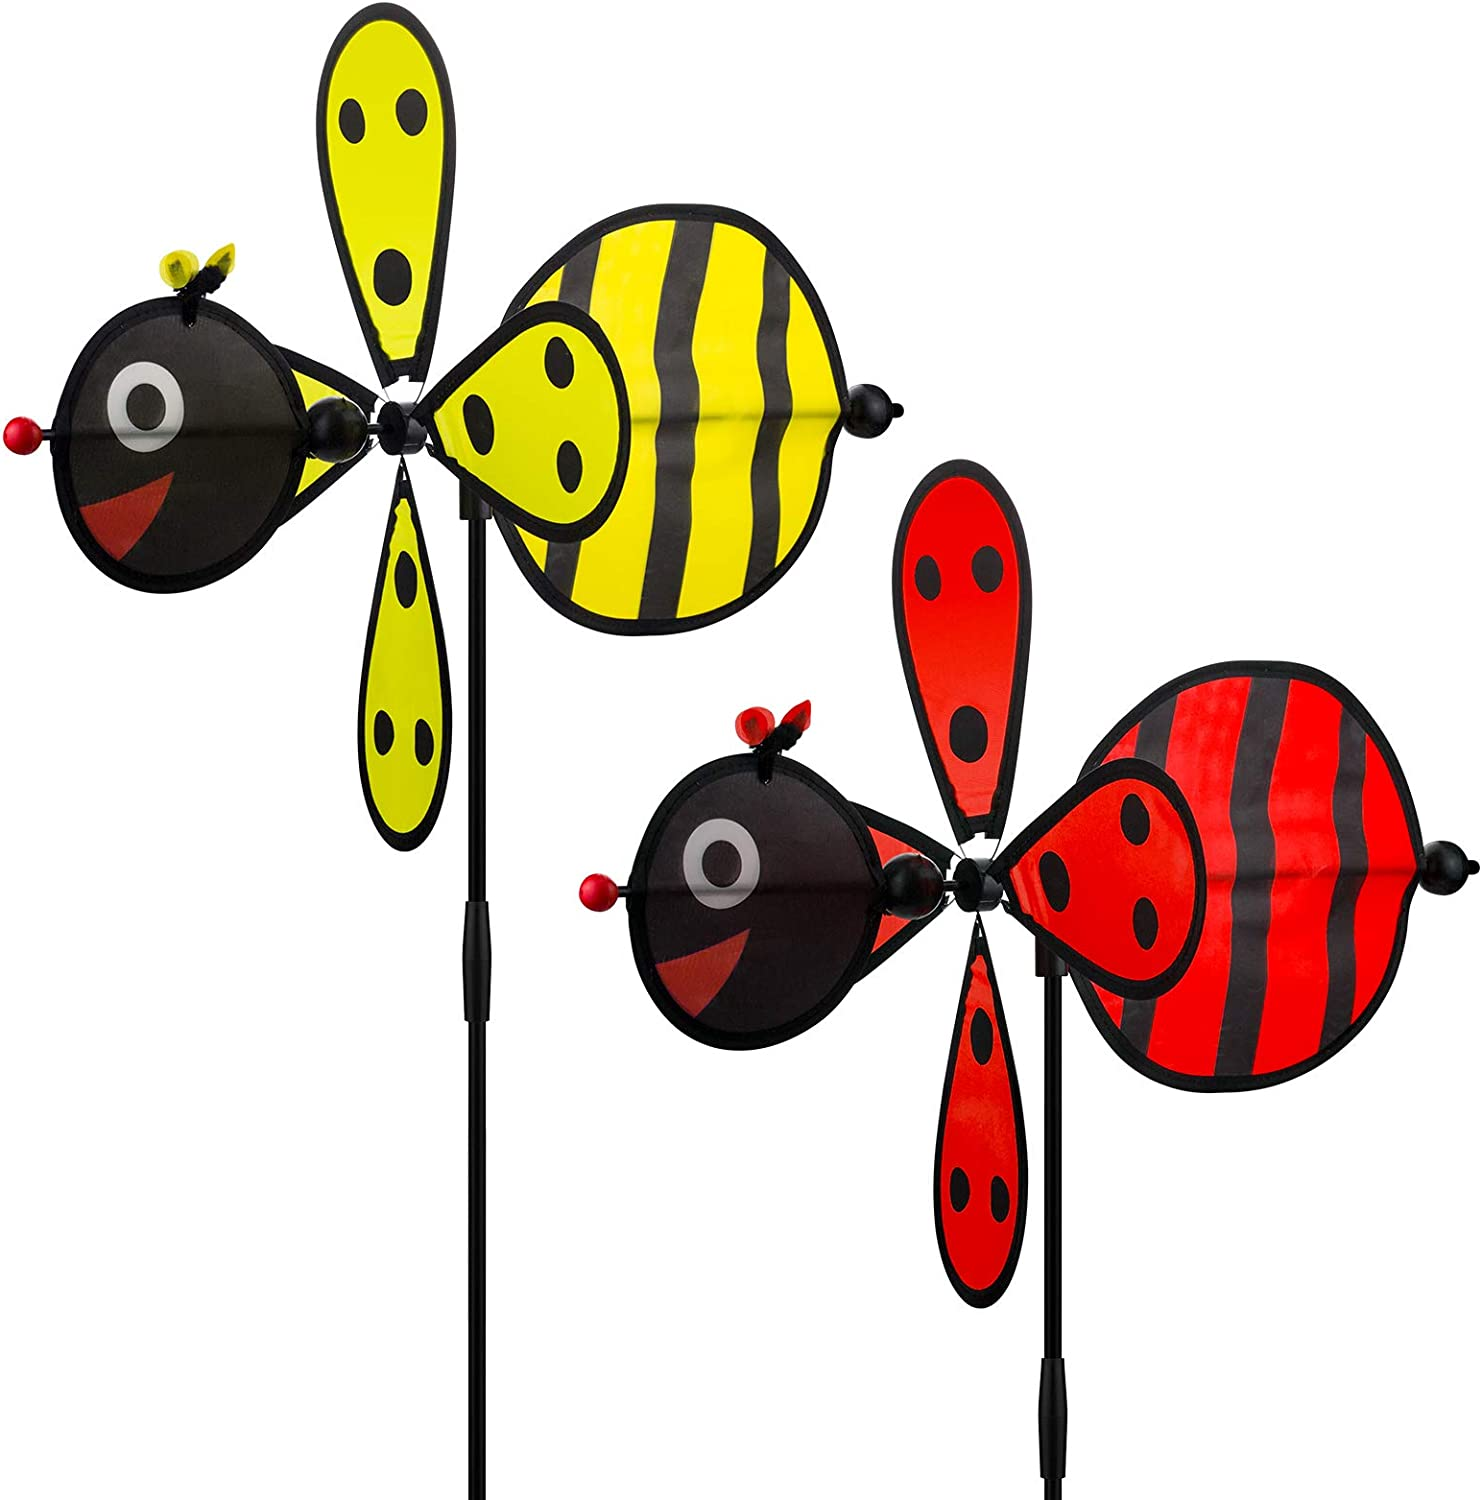 Wind Spinners Outdoor, Garden Spinners Yard Spinners Party Pinwheels for Kids Wind Spinner Beetle Windmills Decorations Outdoor for Yard Patio Lawn & Garden - Surprise and Lovely Gift for Kid (2 Pack)